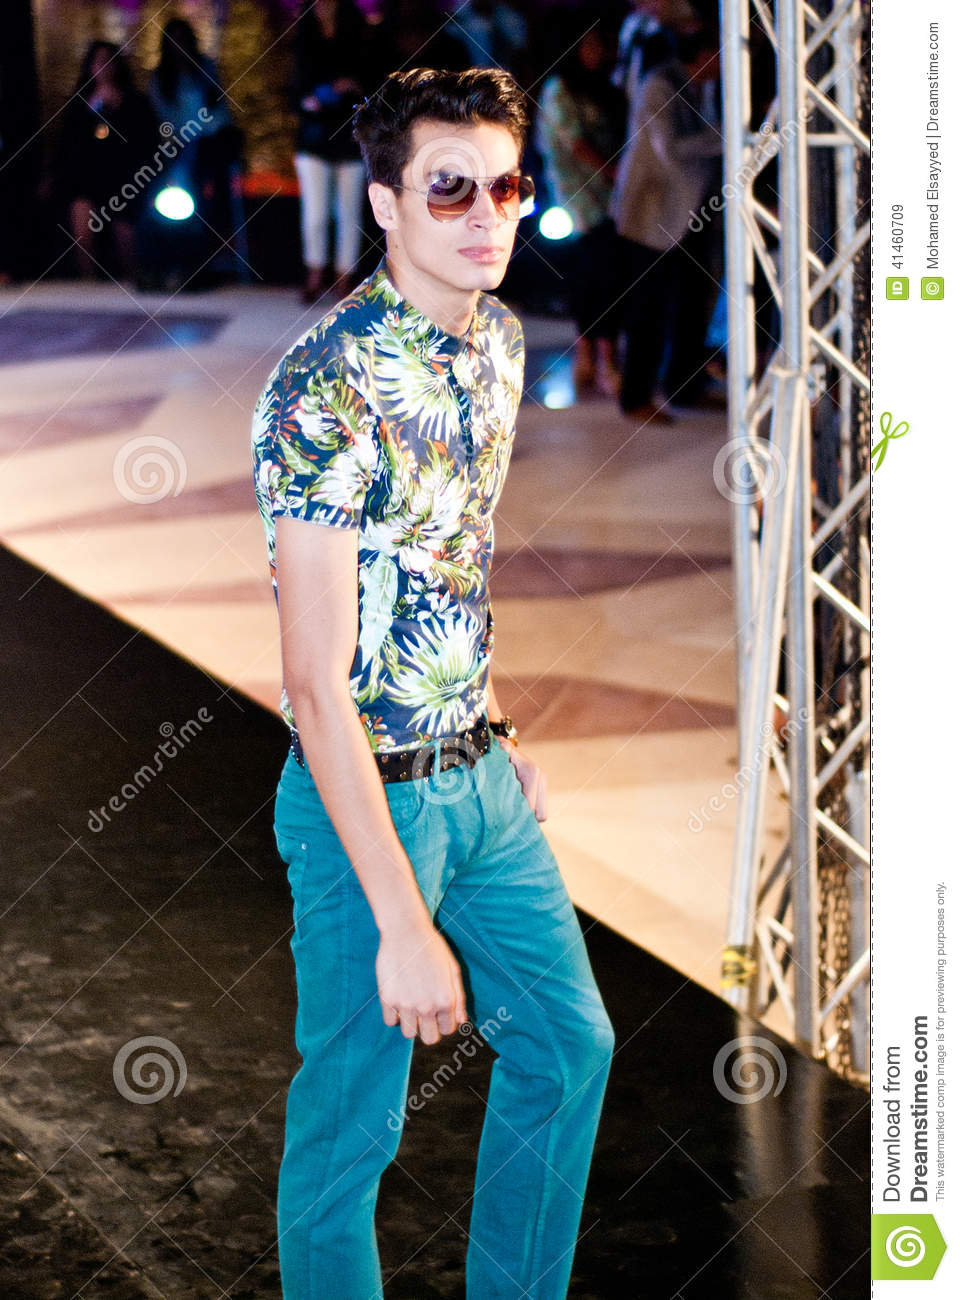 Fashion Show For Max Fashion Model 15 Editorial Stock Image Image Of Cairo Emirates 41460709